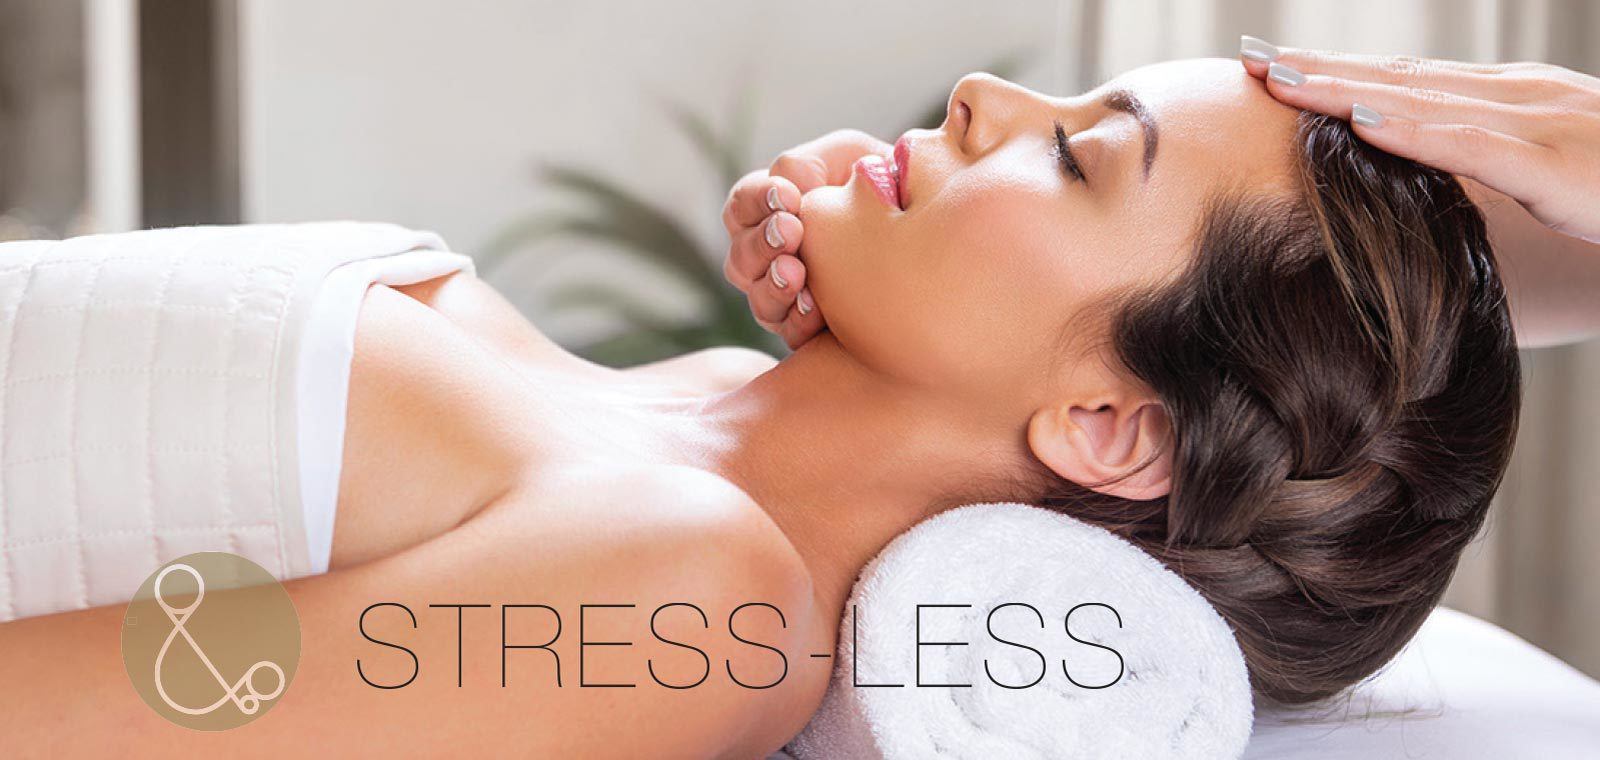 Stress-less massage